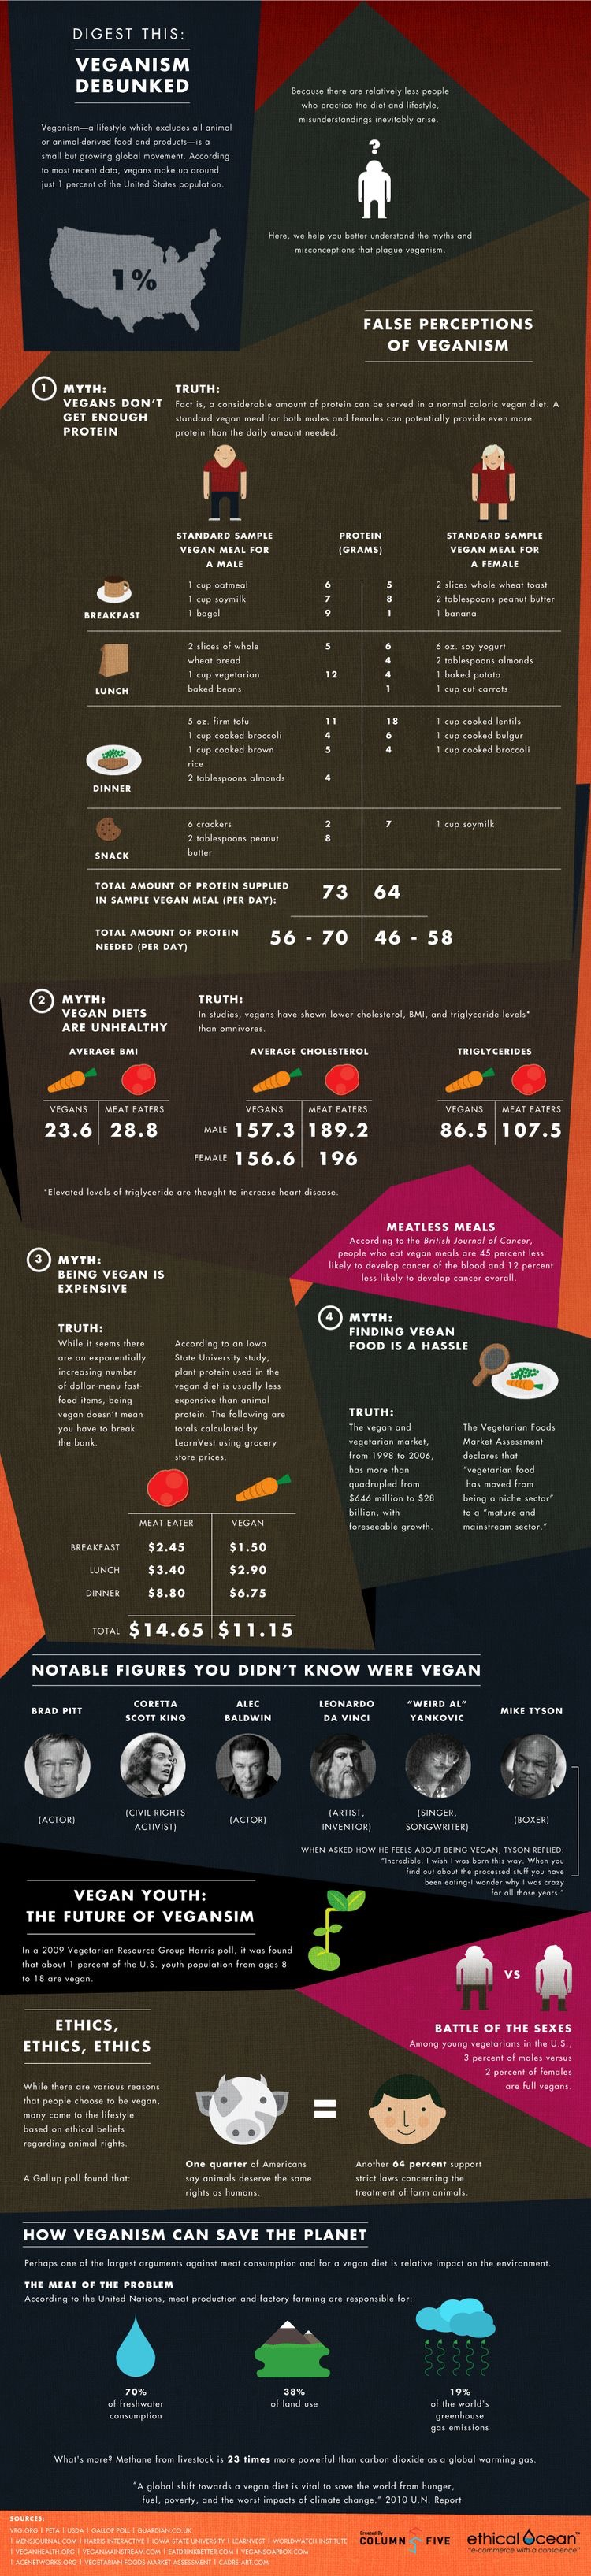 vegan facts infographic